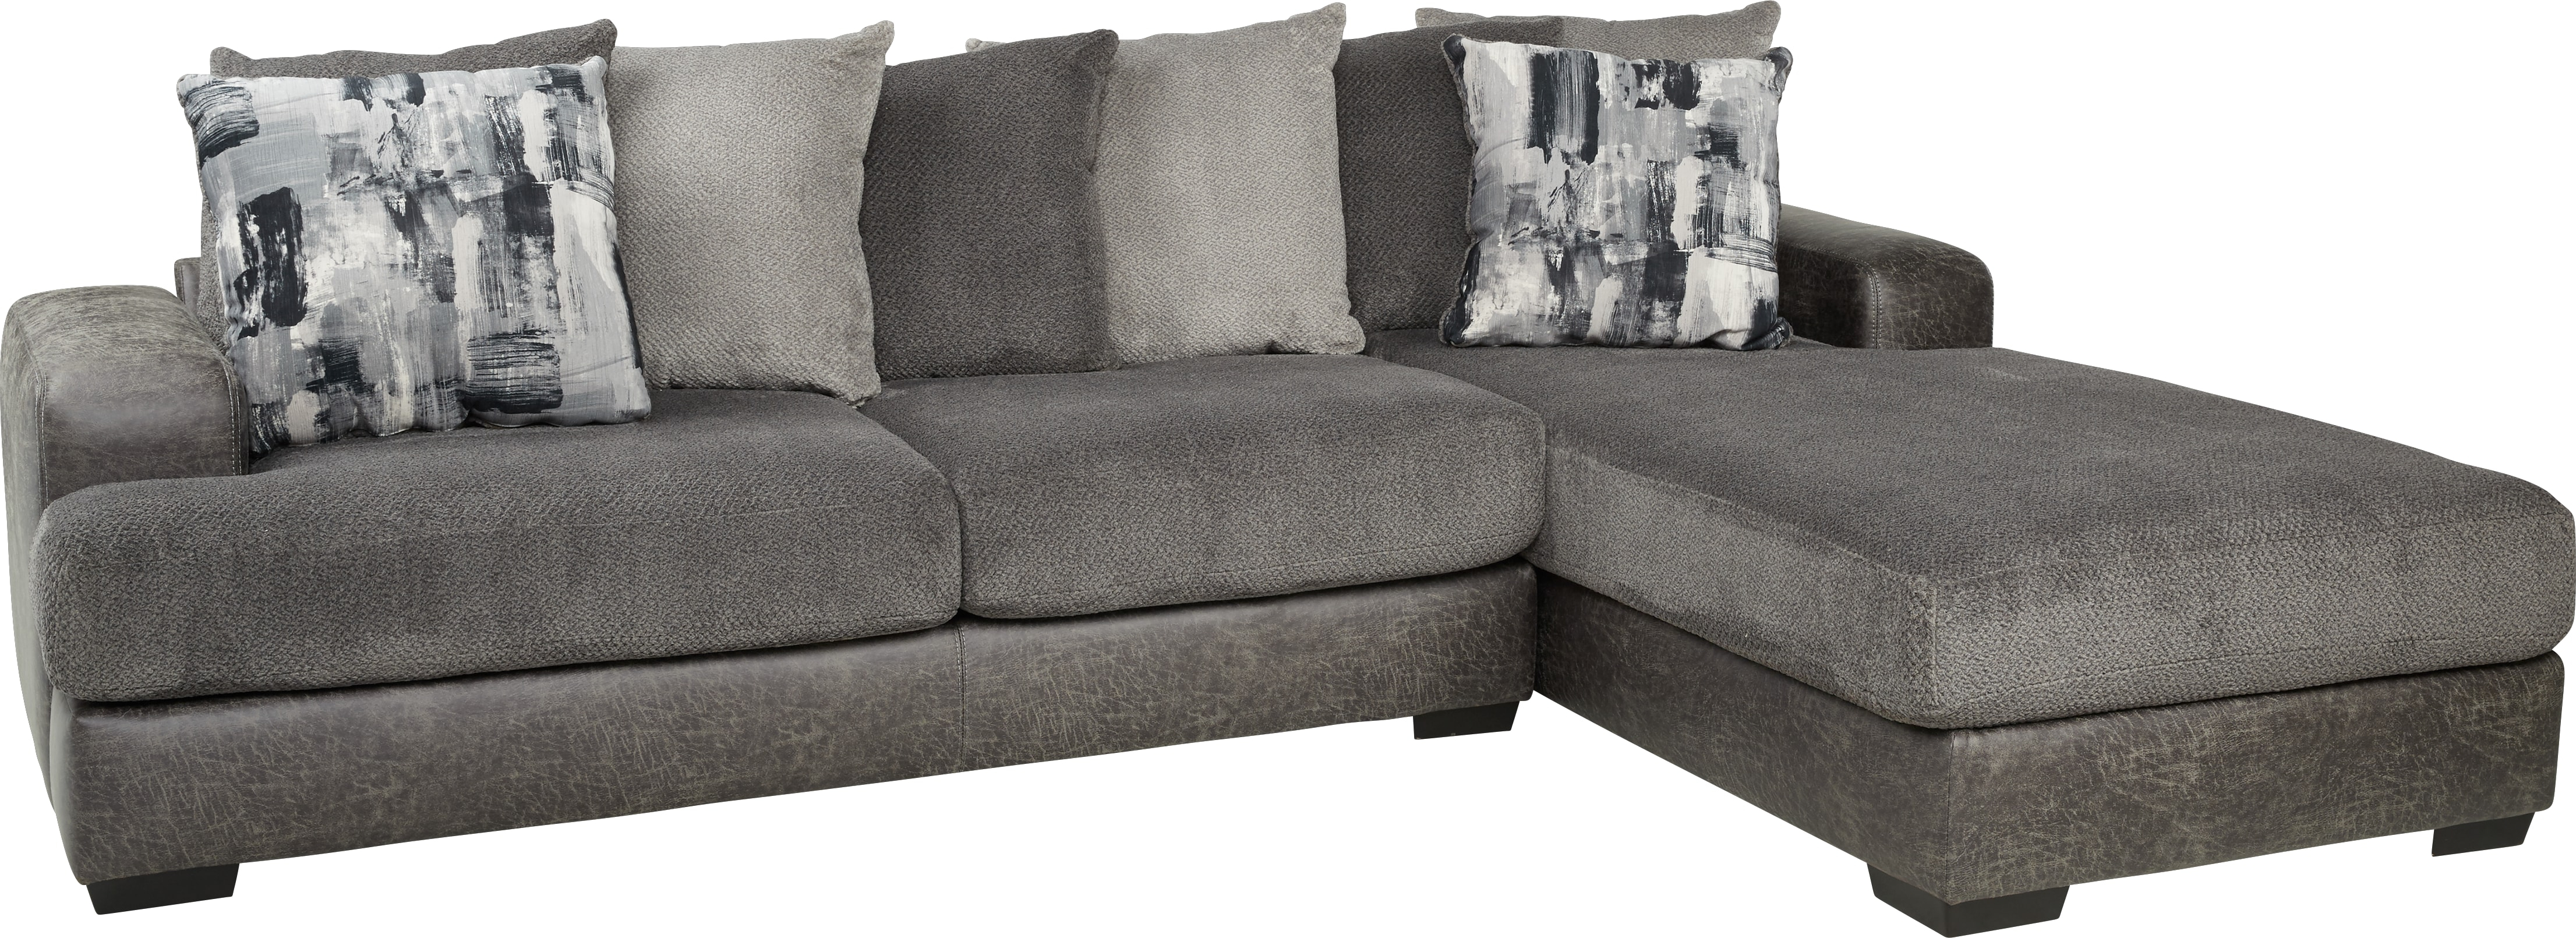 Foster Square Graphite 2 Pc Sectional – Living Room Sets (Gray) Intended For Mcdade Graphite Sofa Chairs (Photo 4 of 20)